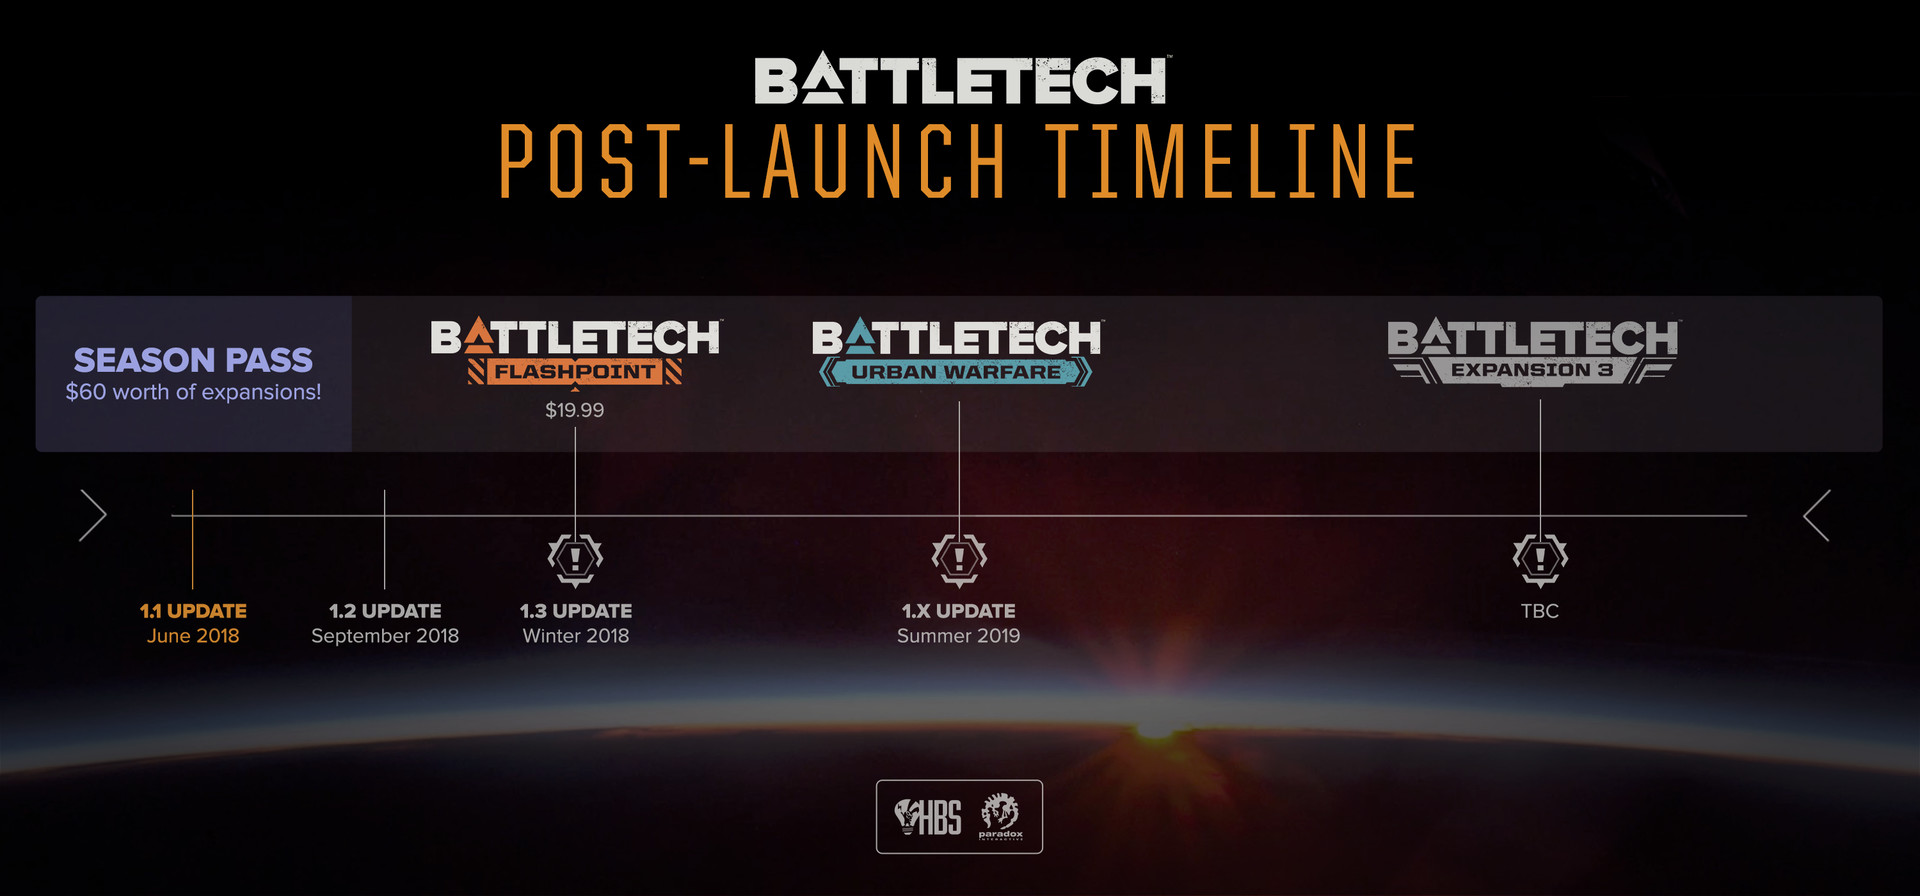 New details on Battletech's expansion titled 'Flashpoints' + Future